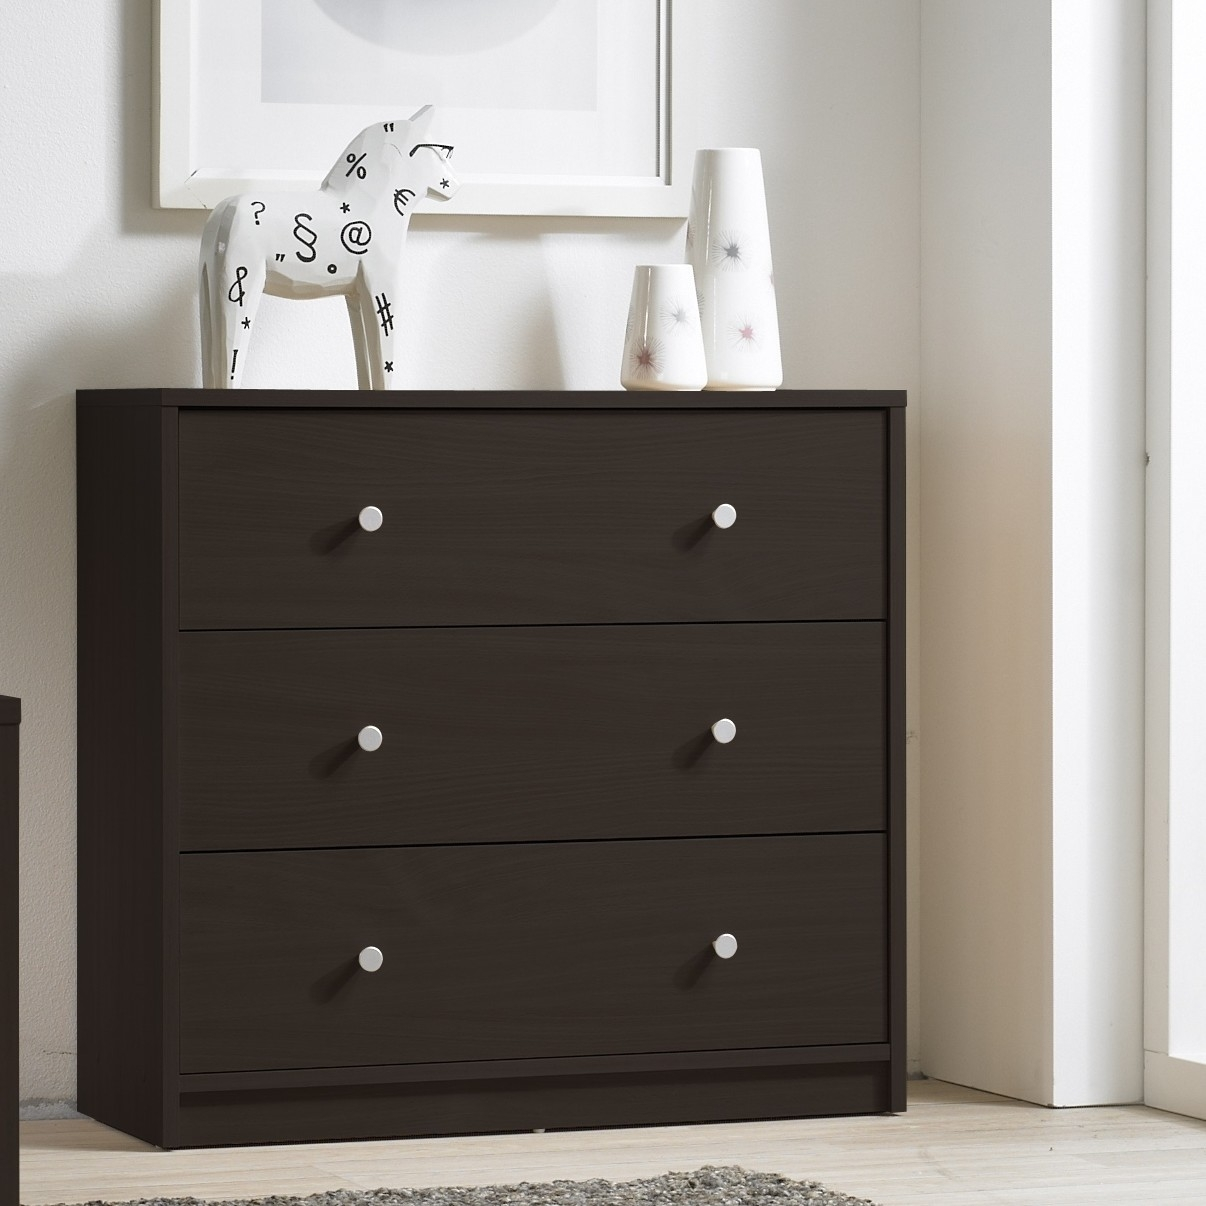 This Modern 3-Drawer Chest Bedroom Bureau in Dark Brown Wood Finish would be a great addition to your home. It has a contemporary style and is easy to clean with a soft damp cloth. Made from PEFC Certified Sustainable Wood; ISTA 3A certified; Frame Material: Wood; Product Type: Standard chest (vertical).